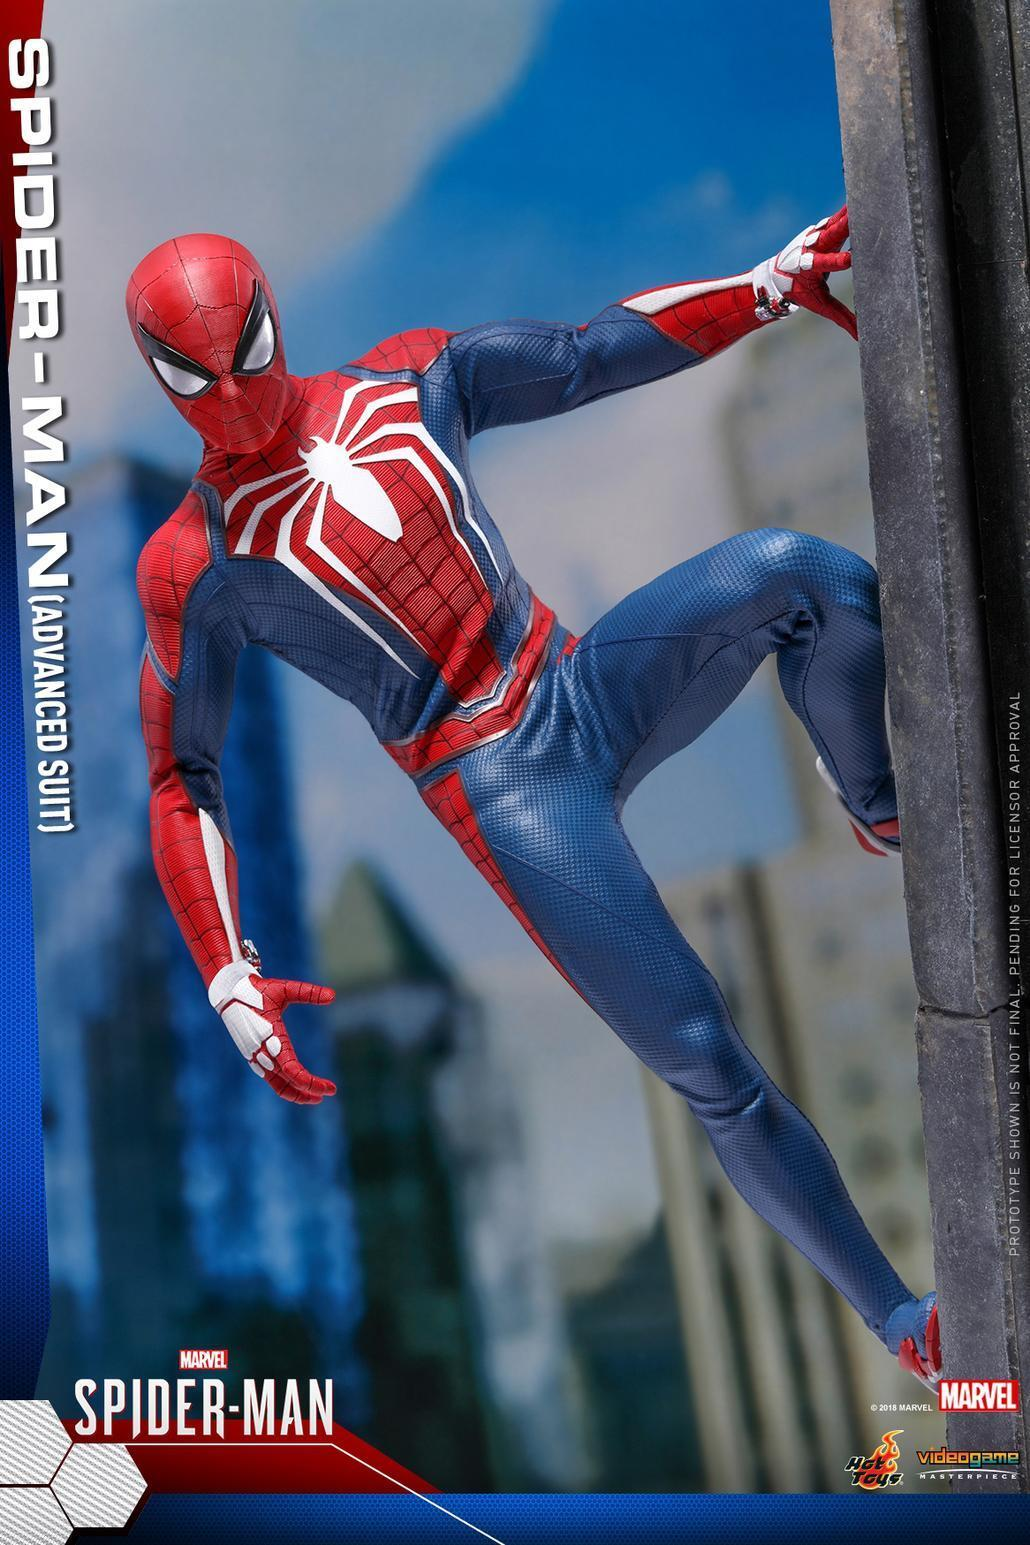 Hot Toys 1 6 VGM31 Marvel's Spider-Man Collection Action Figure (Advanced Suit)